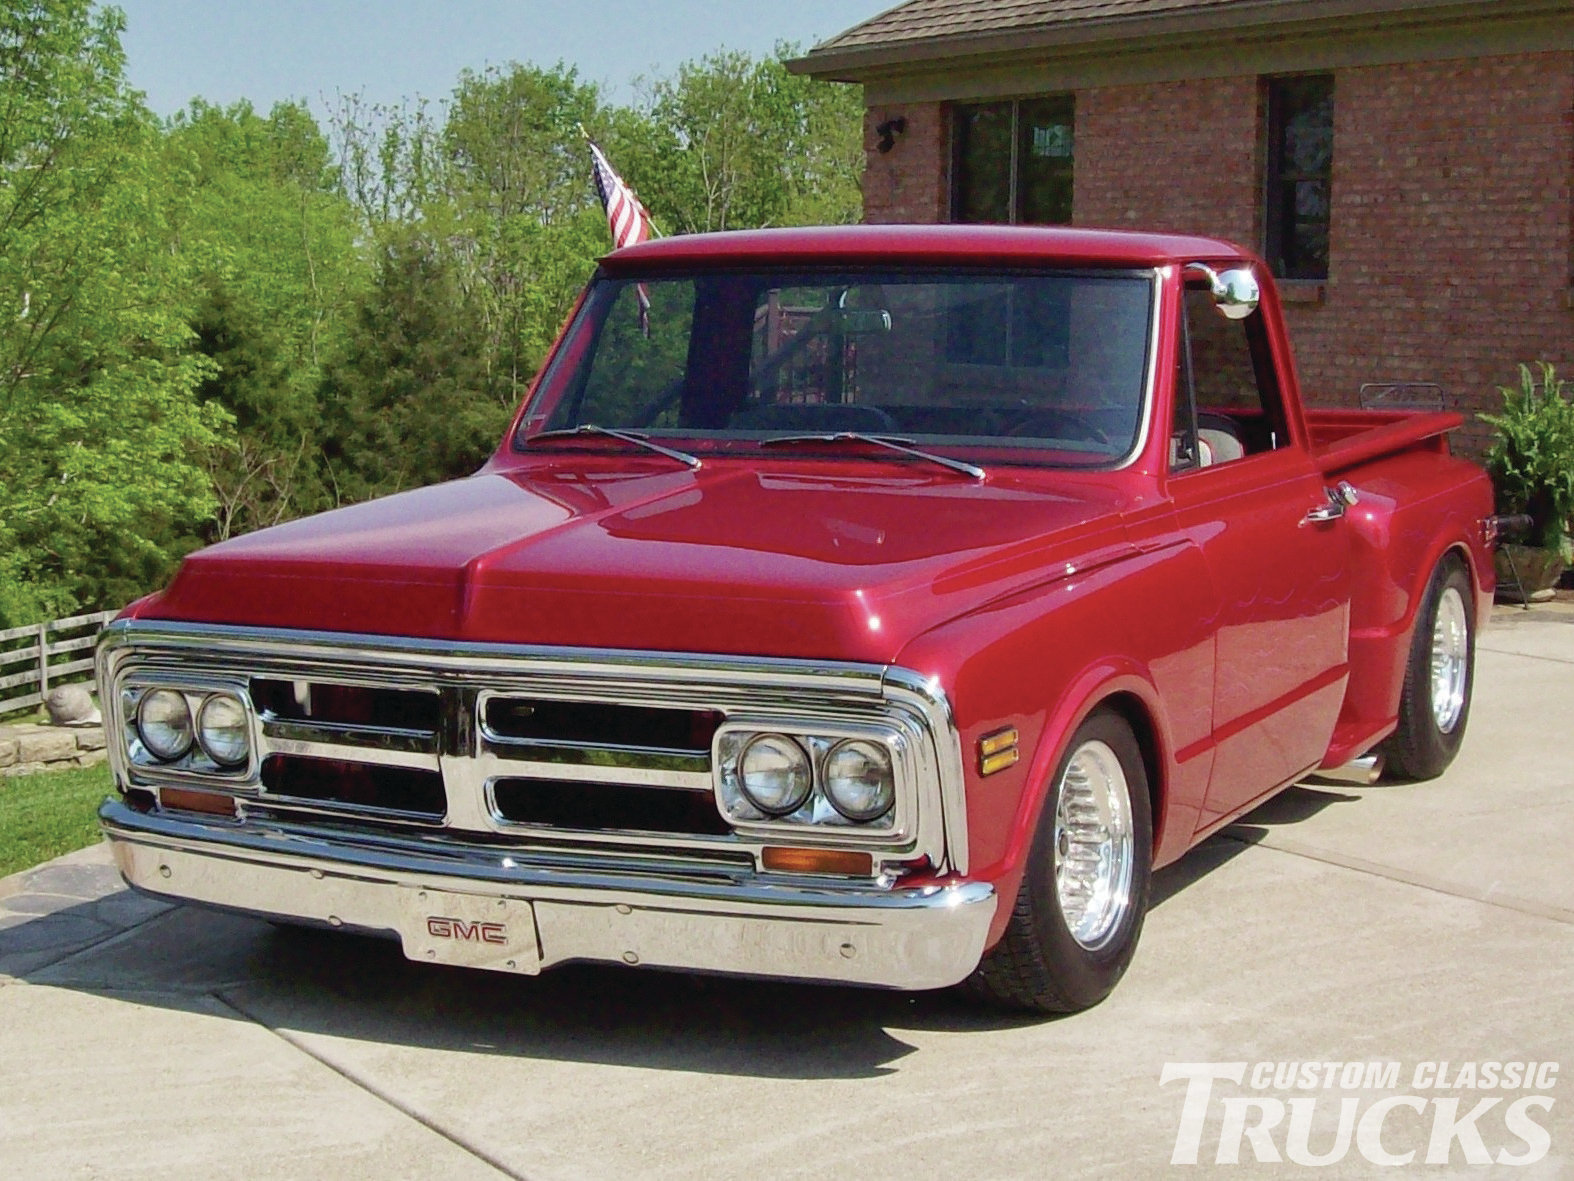 hight resolution of 1110cct 02 o 1969 gmc truck front